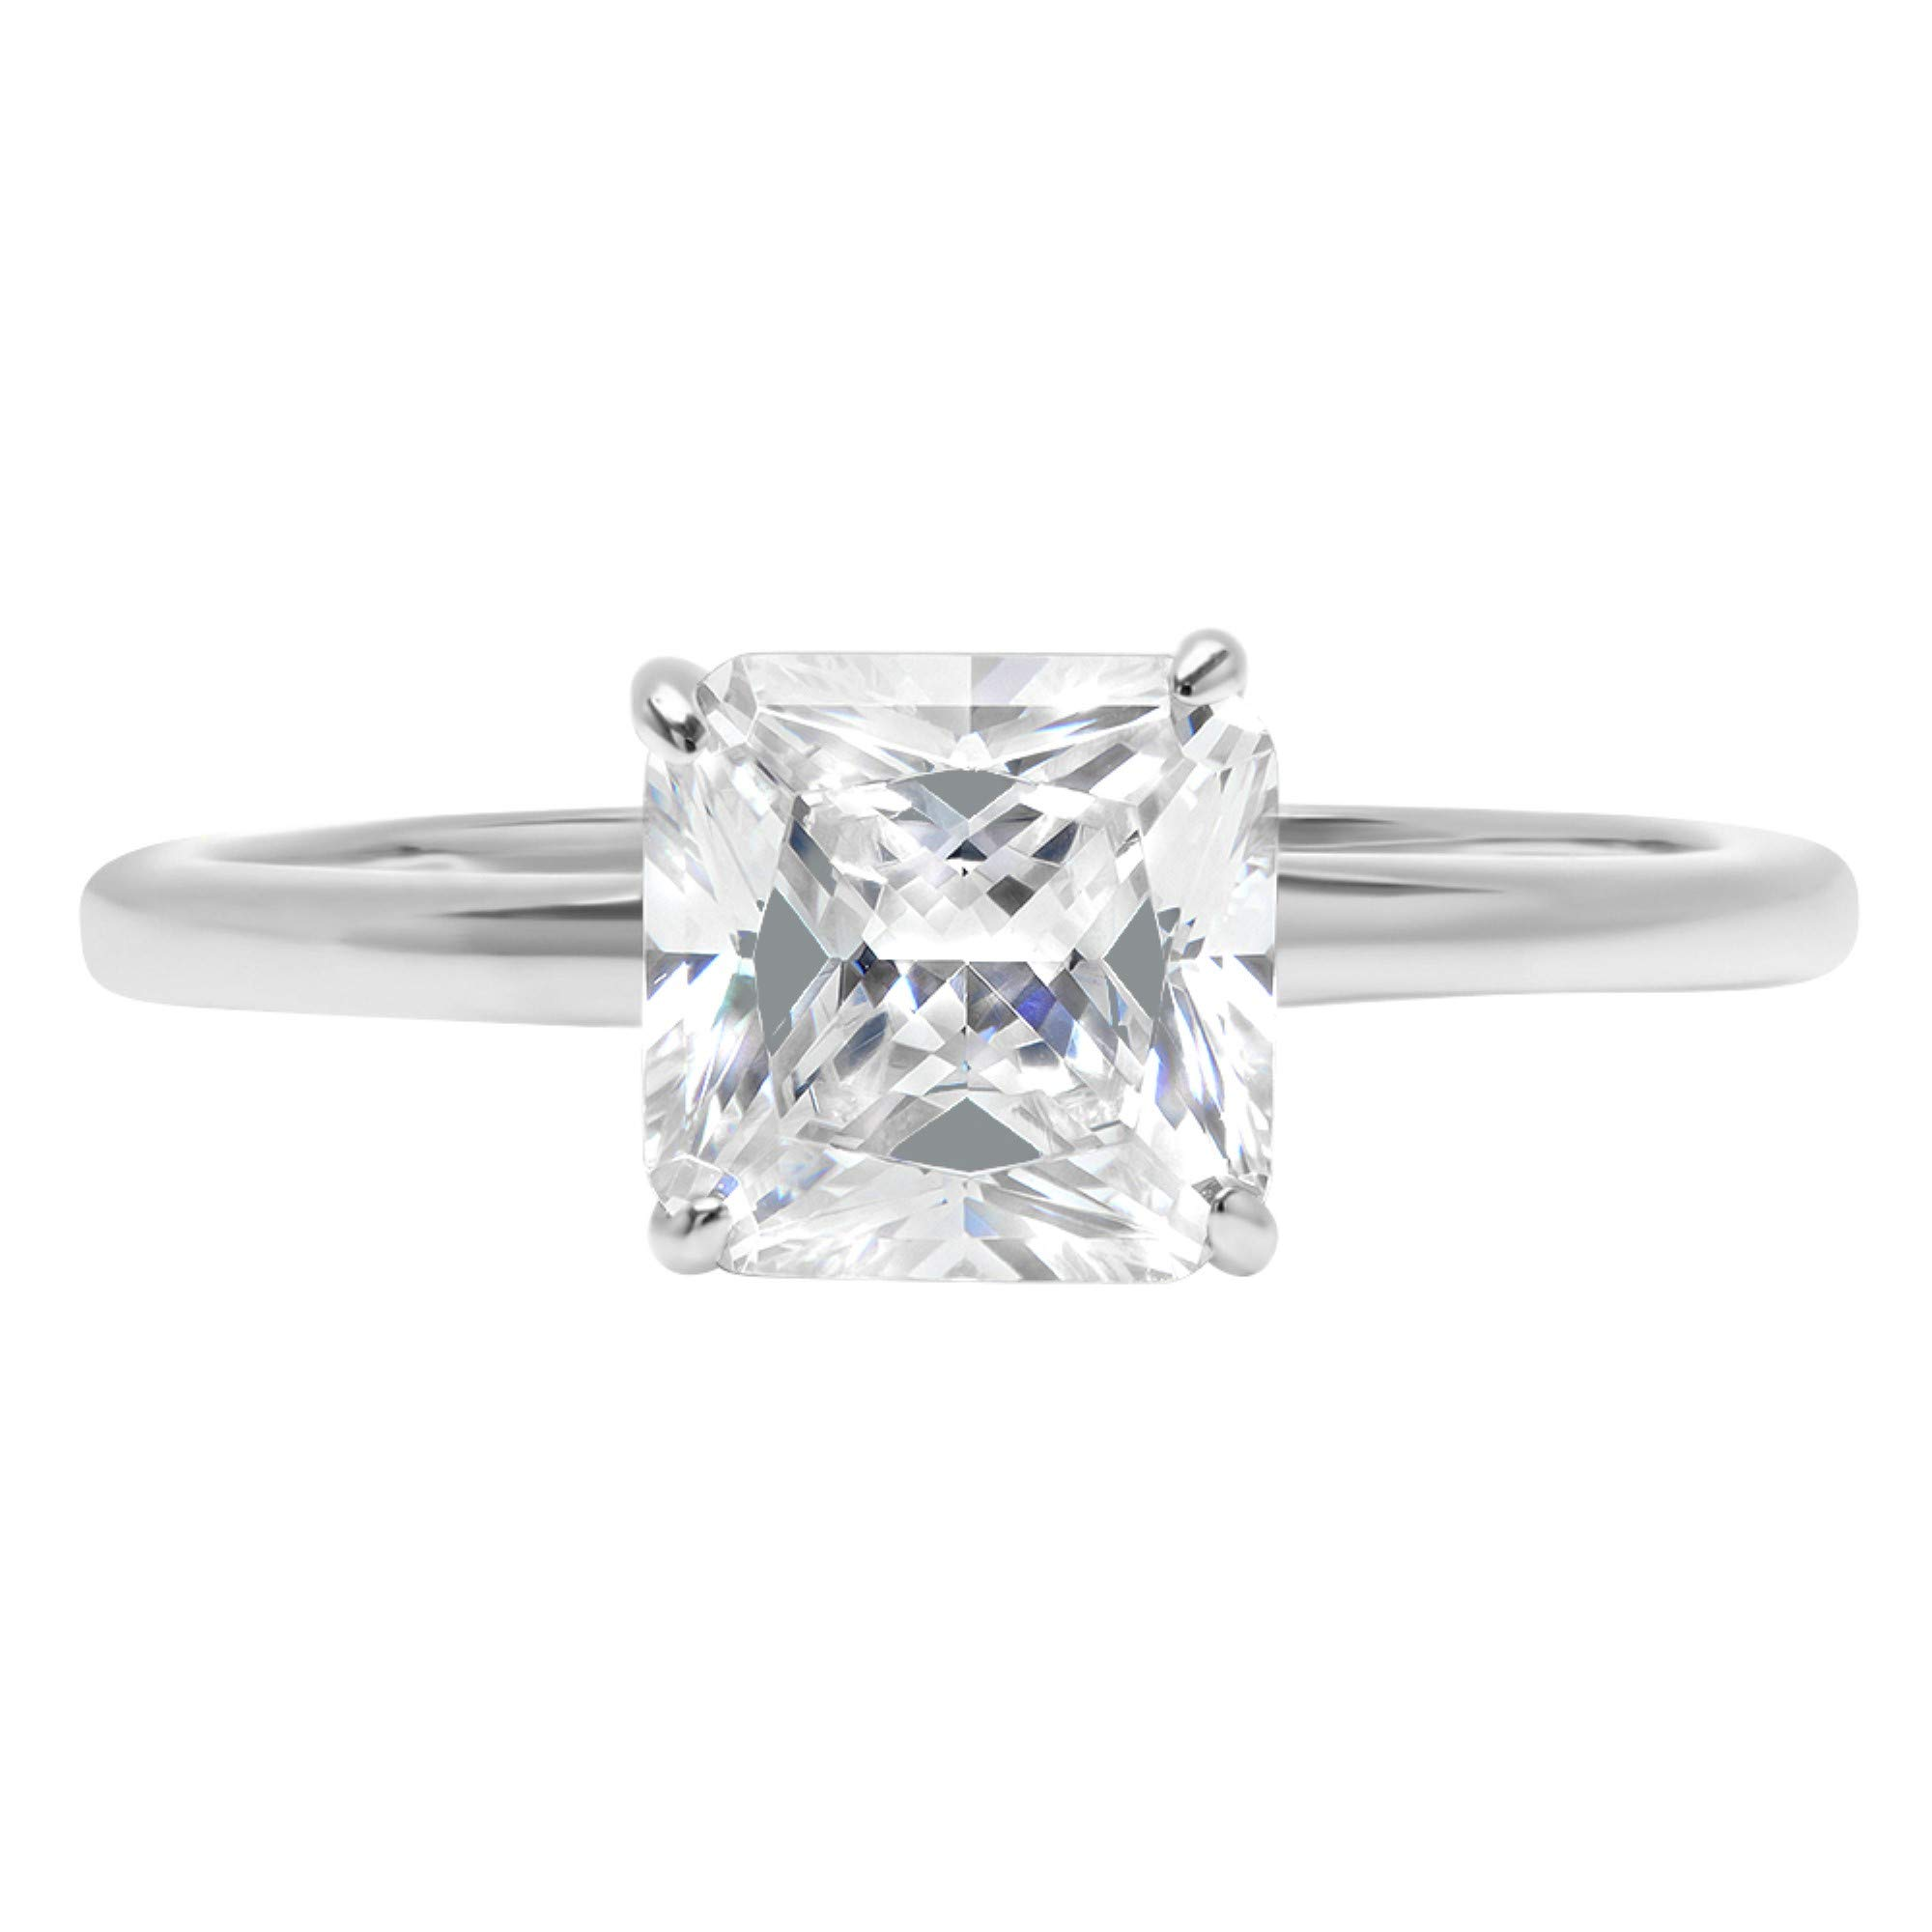 1.9ct Brilliant Asscher Cut Solitaire Highest Quality Lab Created White Sapphire Ideal VVS1 D 4-Prong Engagement Wedding Bridal Promise Anniversary Ring Solid Real 14k White Gold for Women